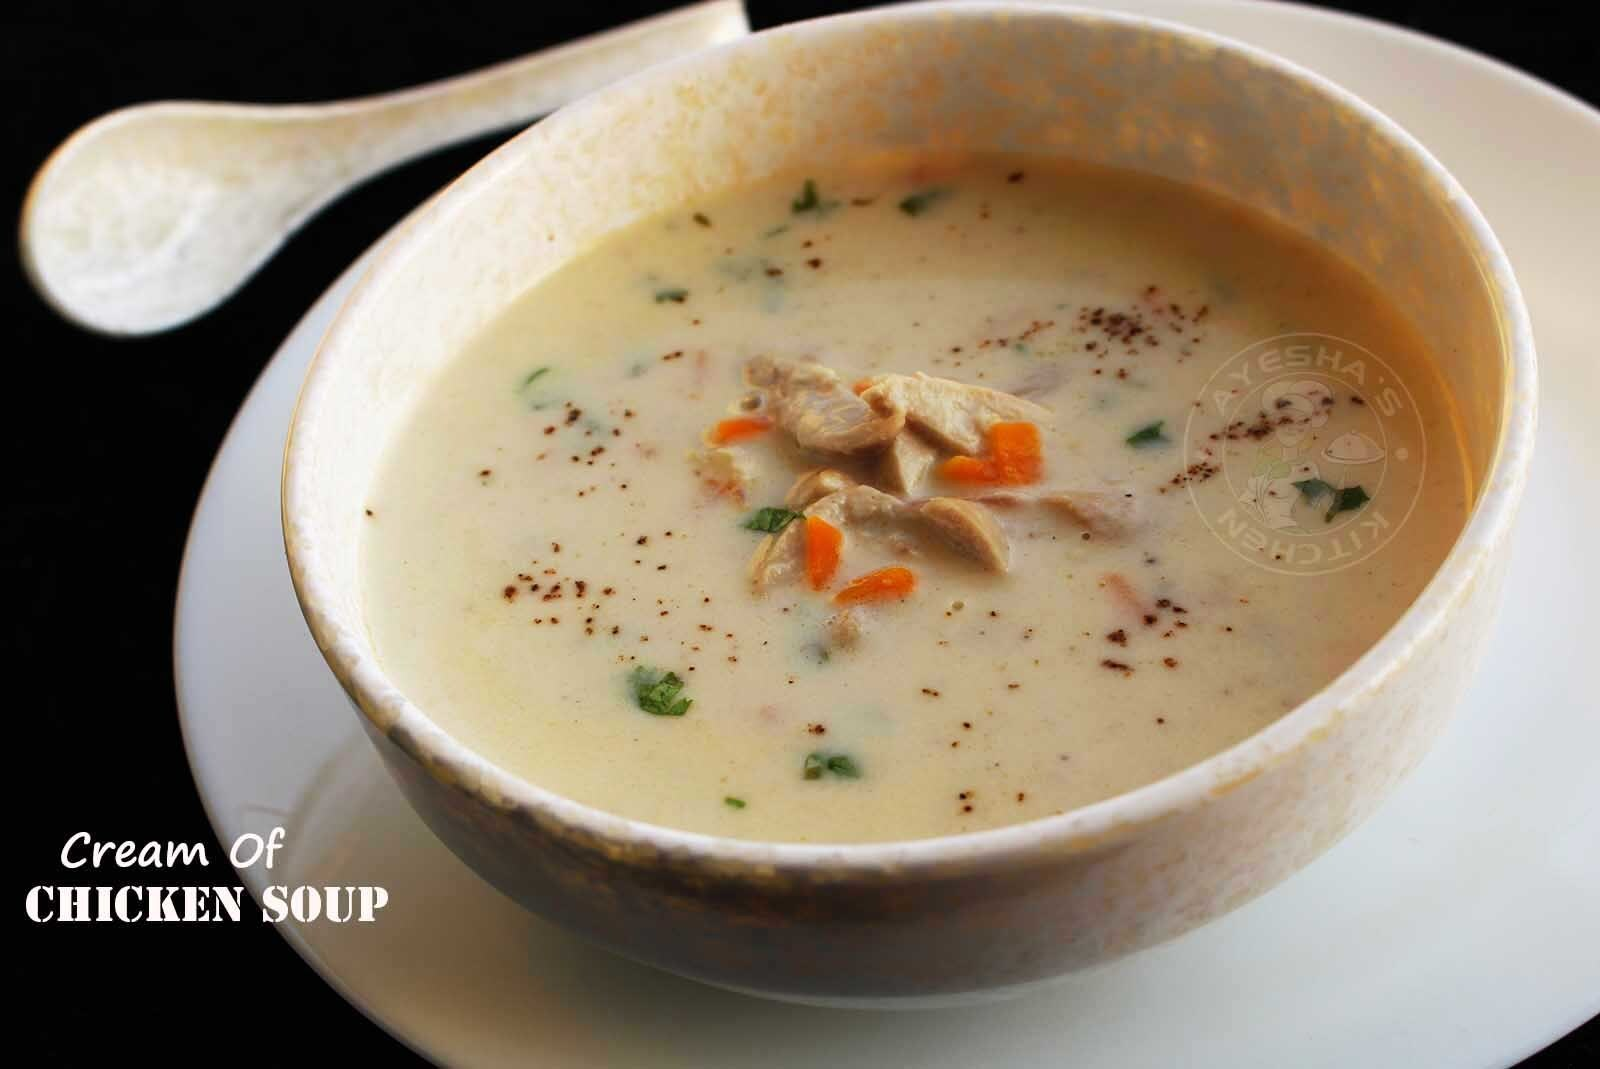 CREAM OF CHICKEN SOUP RECIPE - MAKING CHICKEN BROTH AT HOME